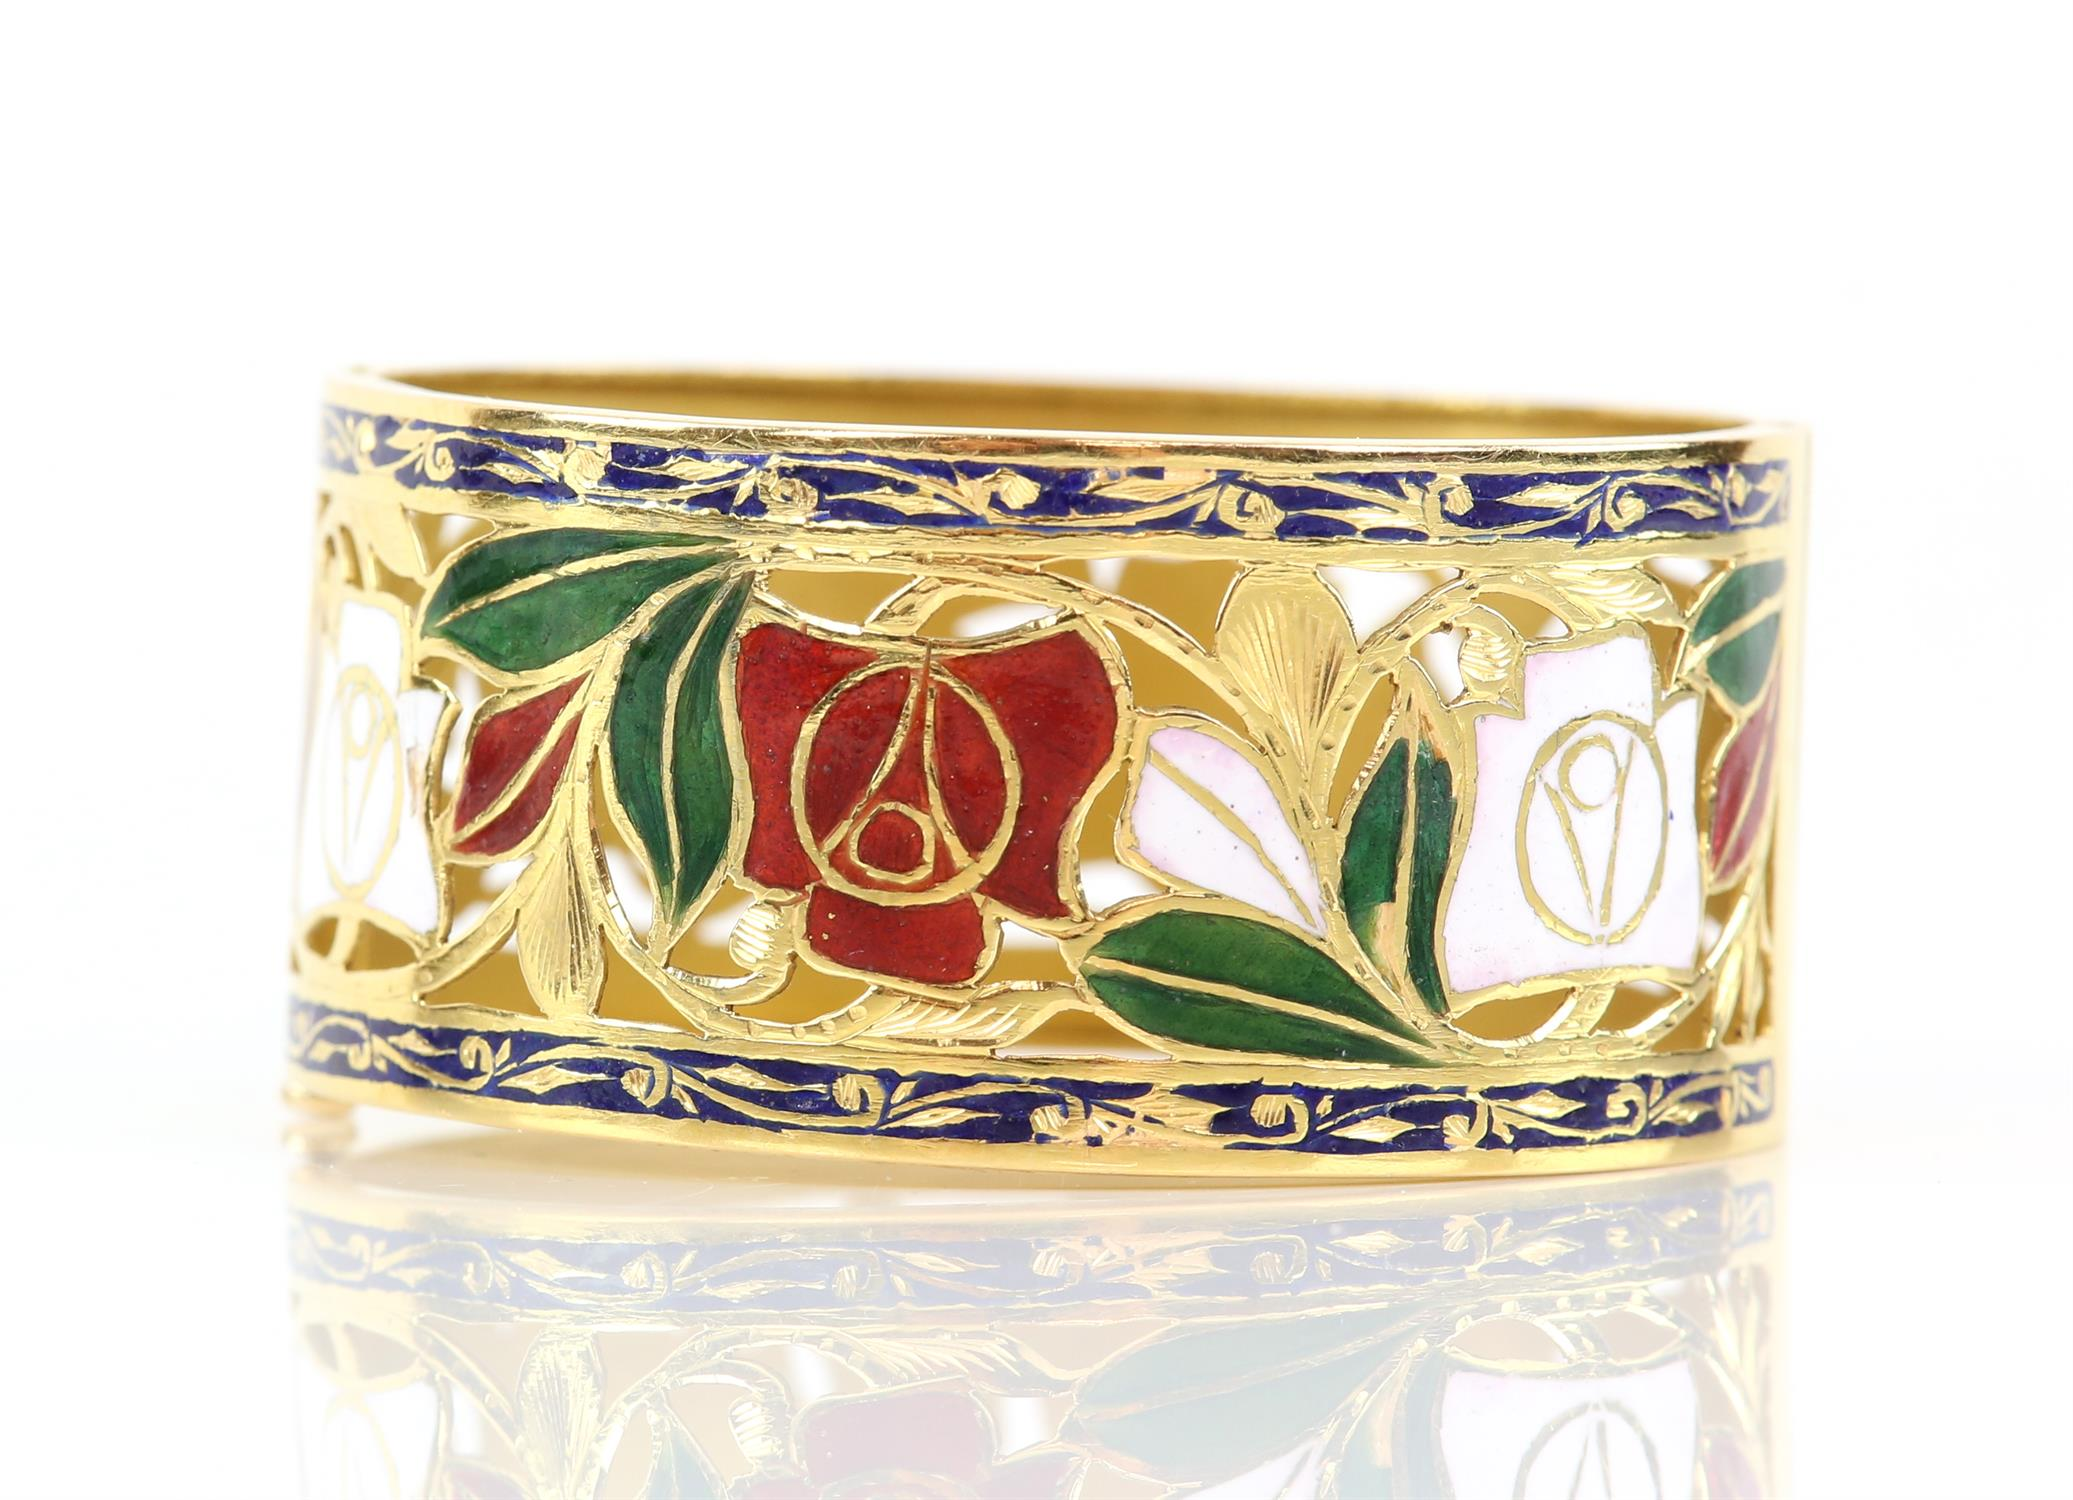 Enamel red and white rose gold pierced bangle, with enamel leaves and scrolled blue enamel borders, - Image 5 of 7